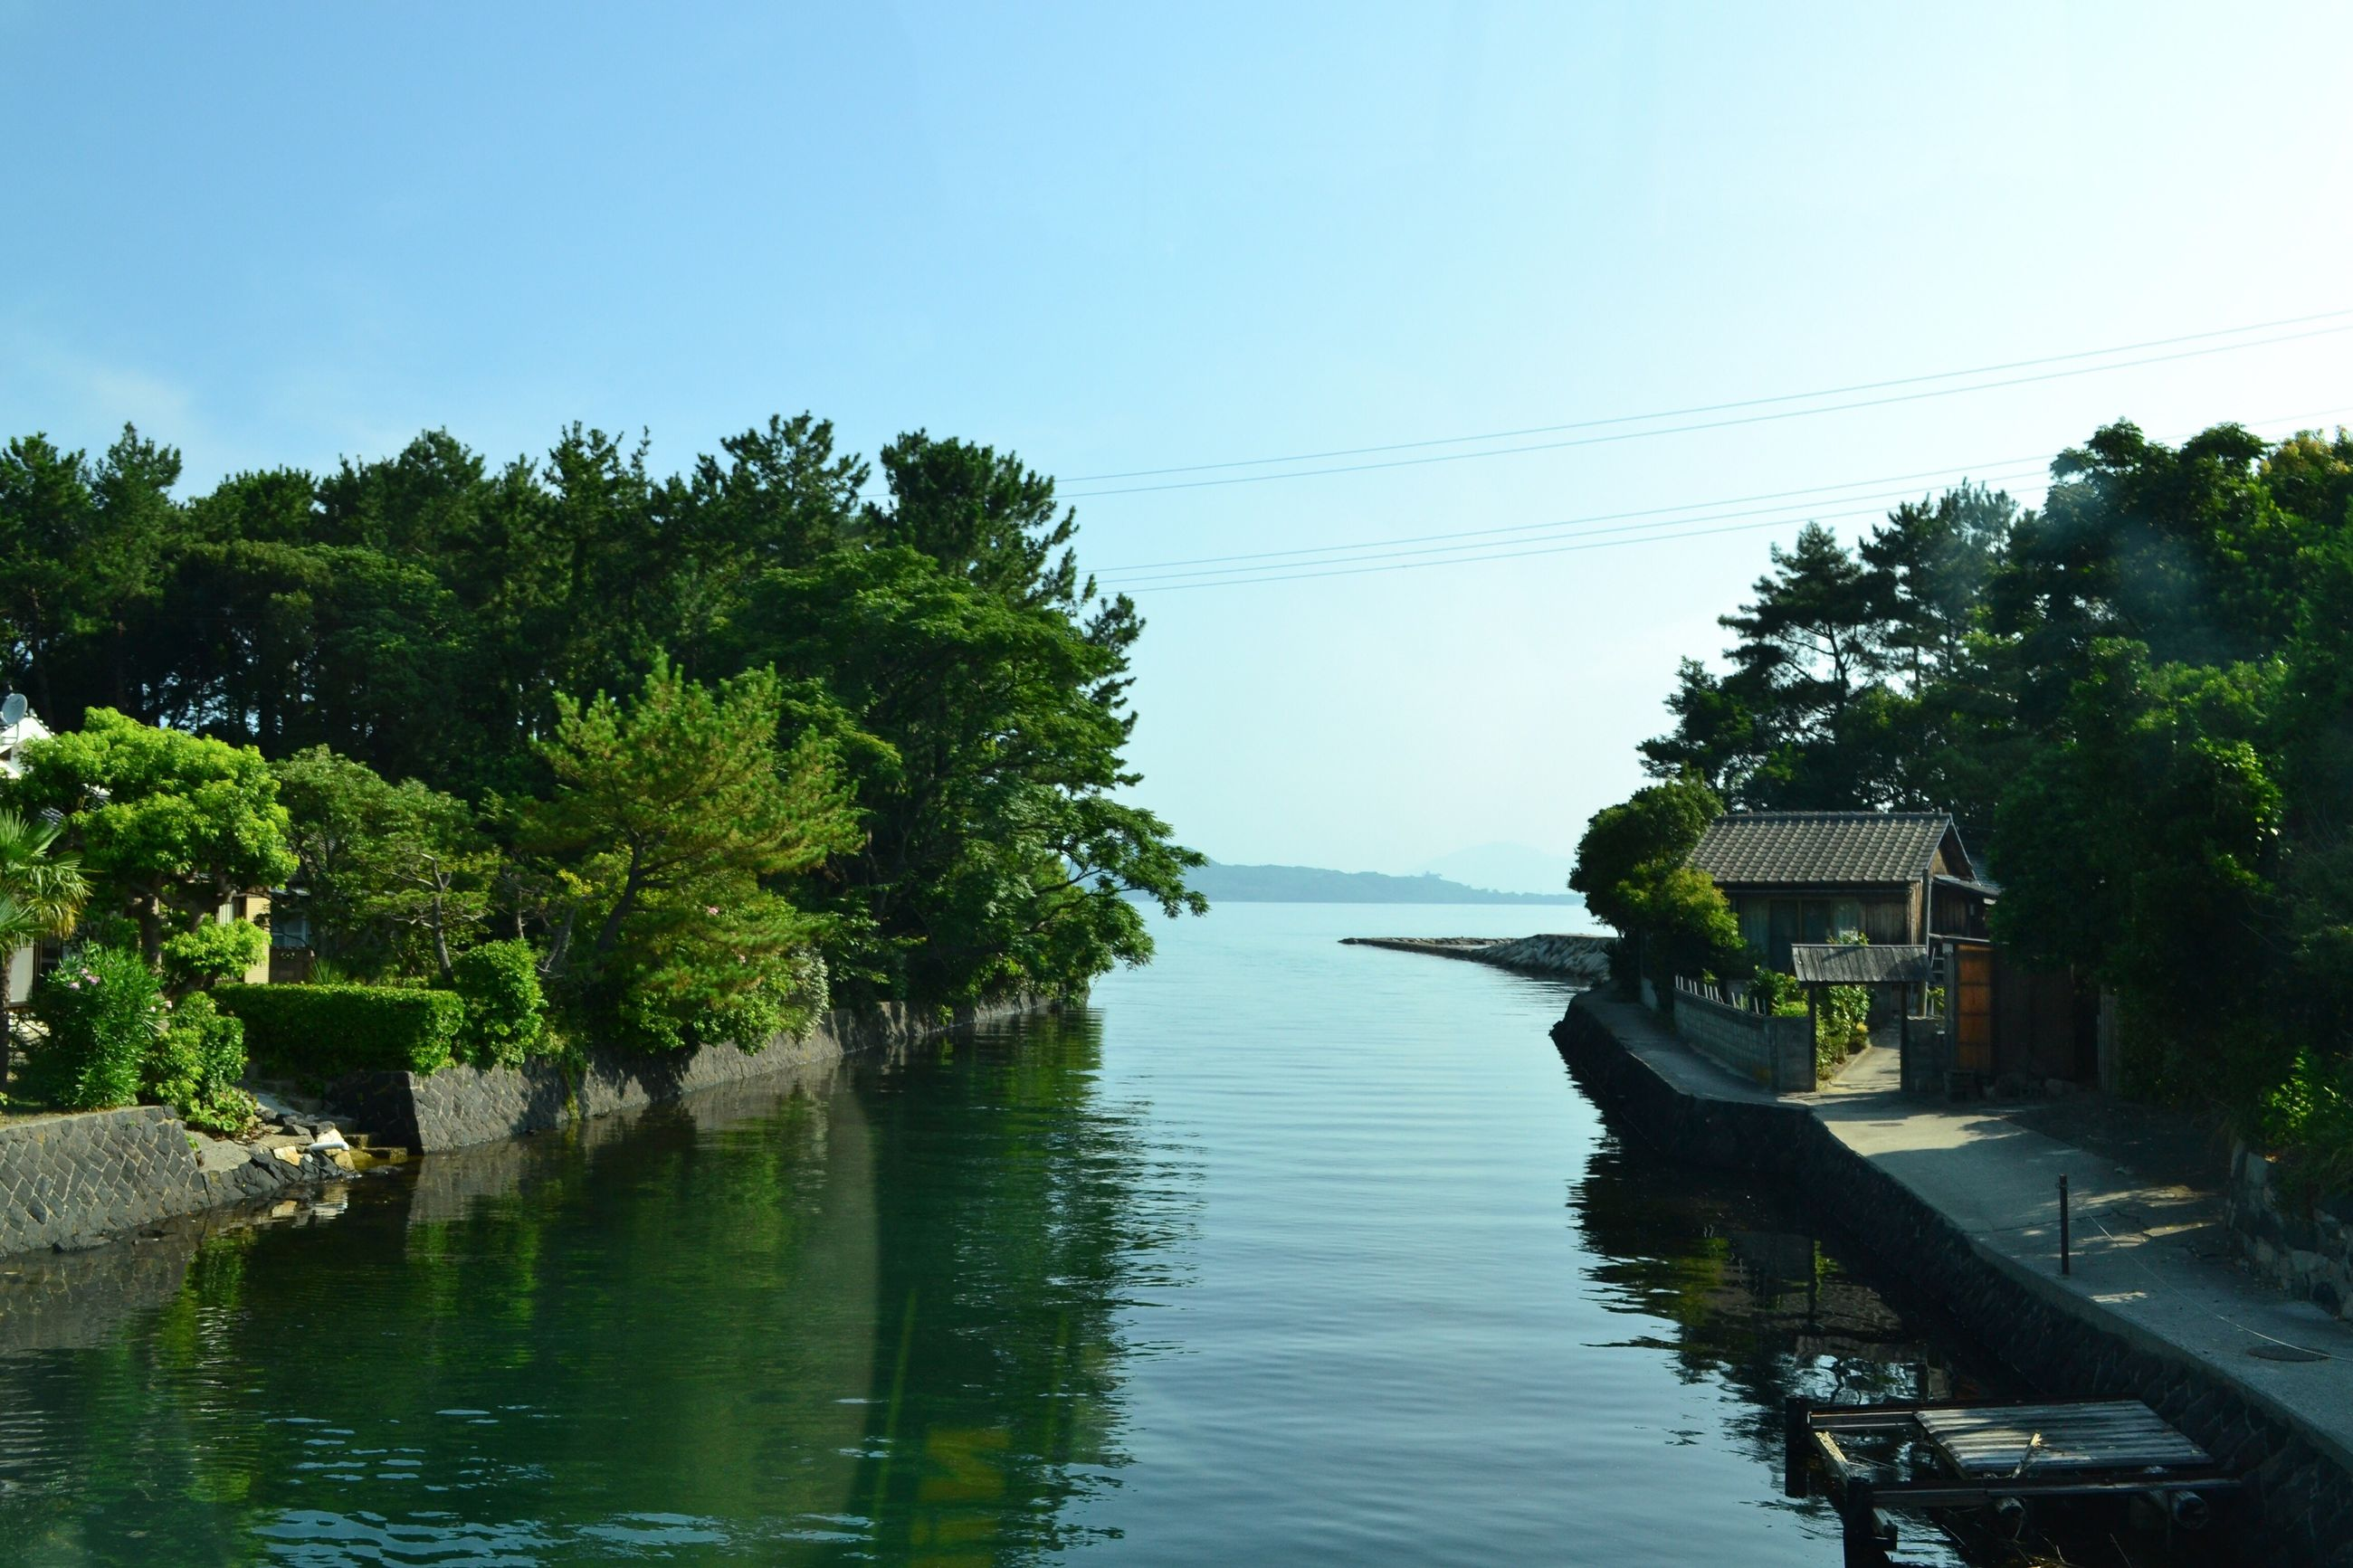 water, tree, clear sky, tranquil scene, scenics, river, architecture, tranquility, building exterior, sea, calm, blue, waterfront, growth, day, nature, beauty in nature, outdoors, riverbank, canal, no people, tourism, in front of, town, lakeside, remote